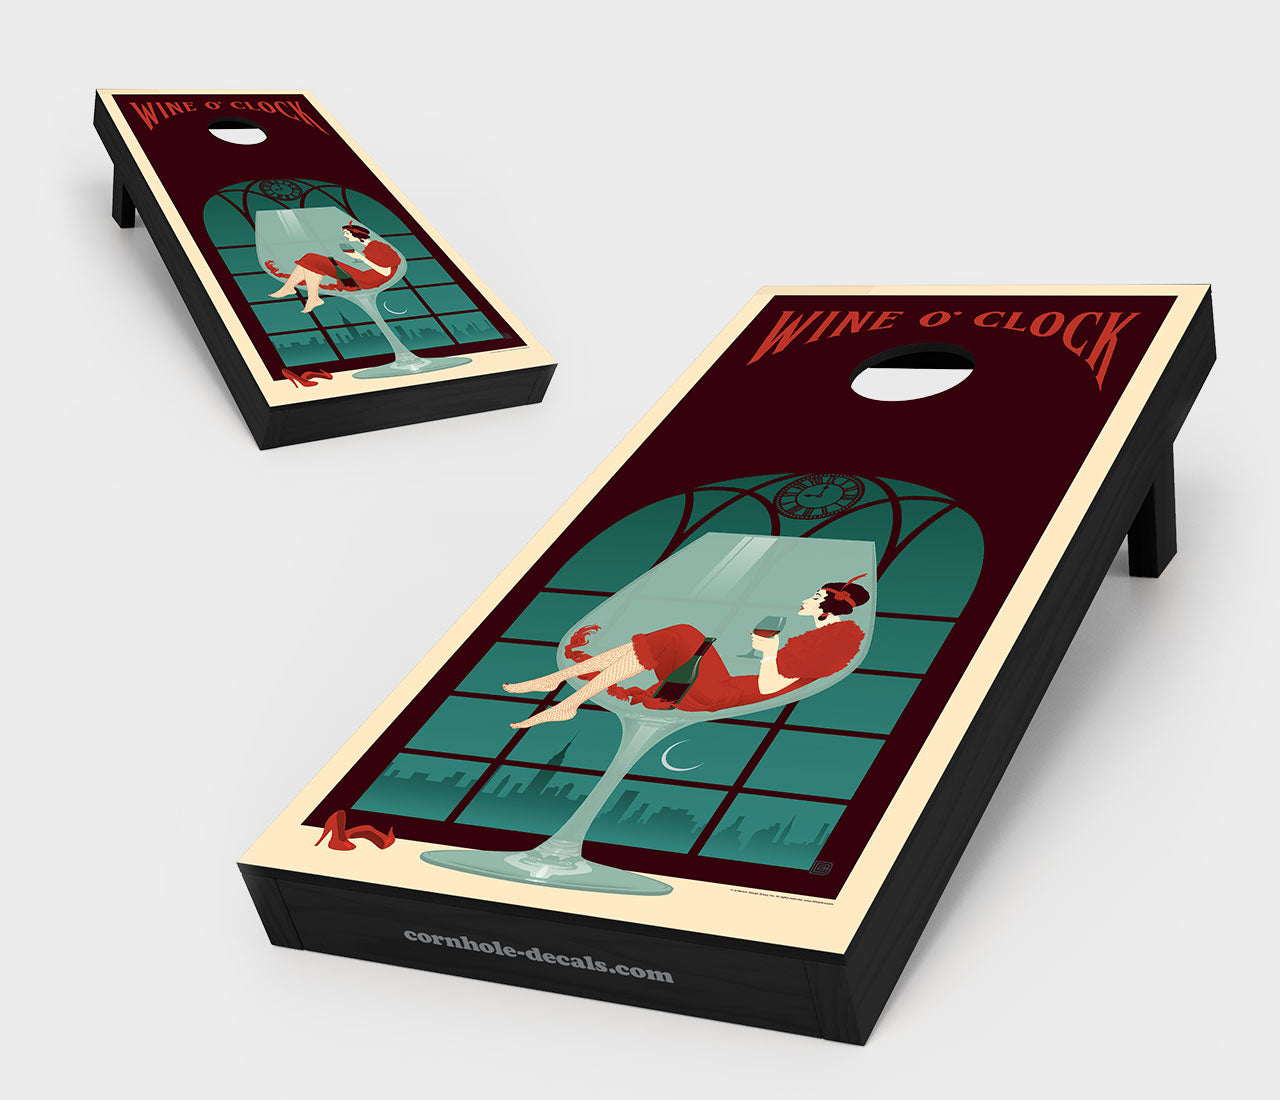 Chuggles Cornhole - Anderson Design Group - Wine O' Clock Cornhole Board Set